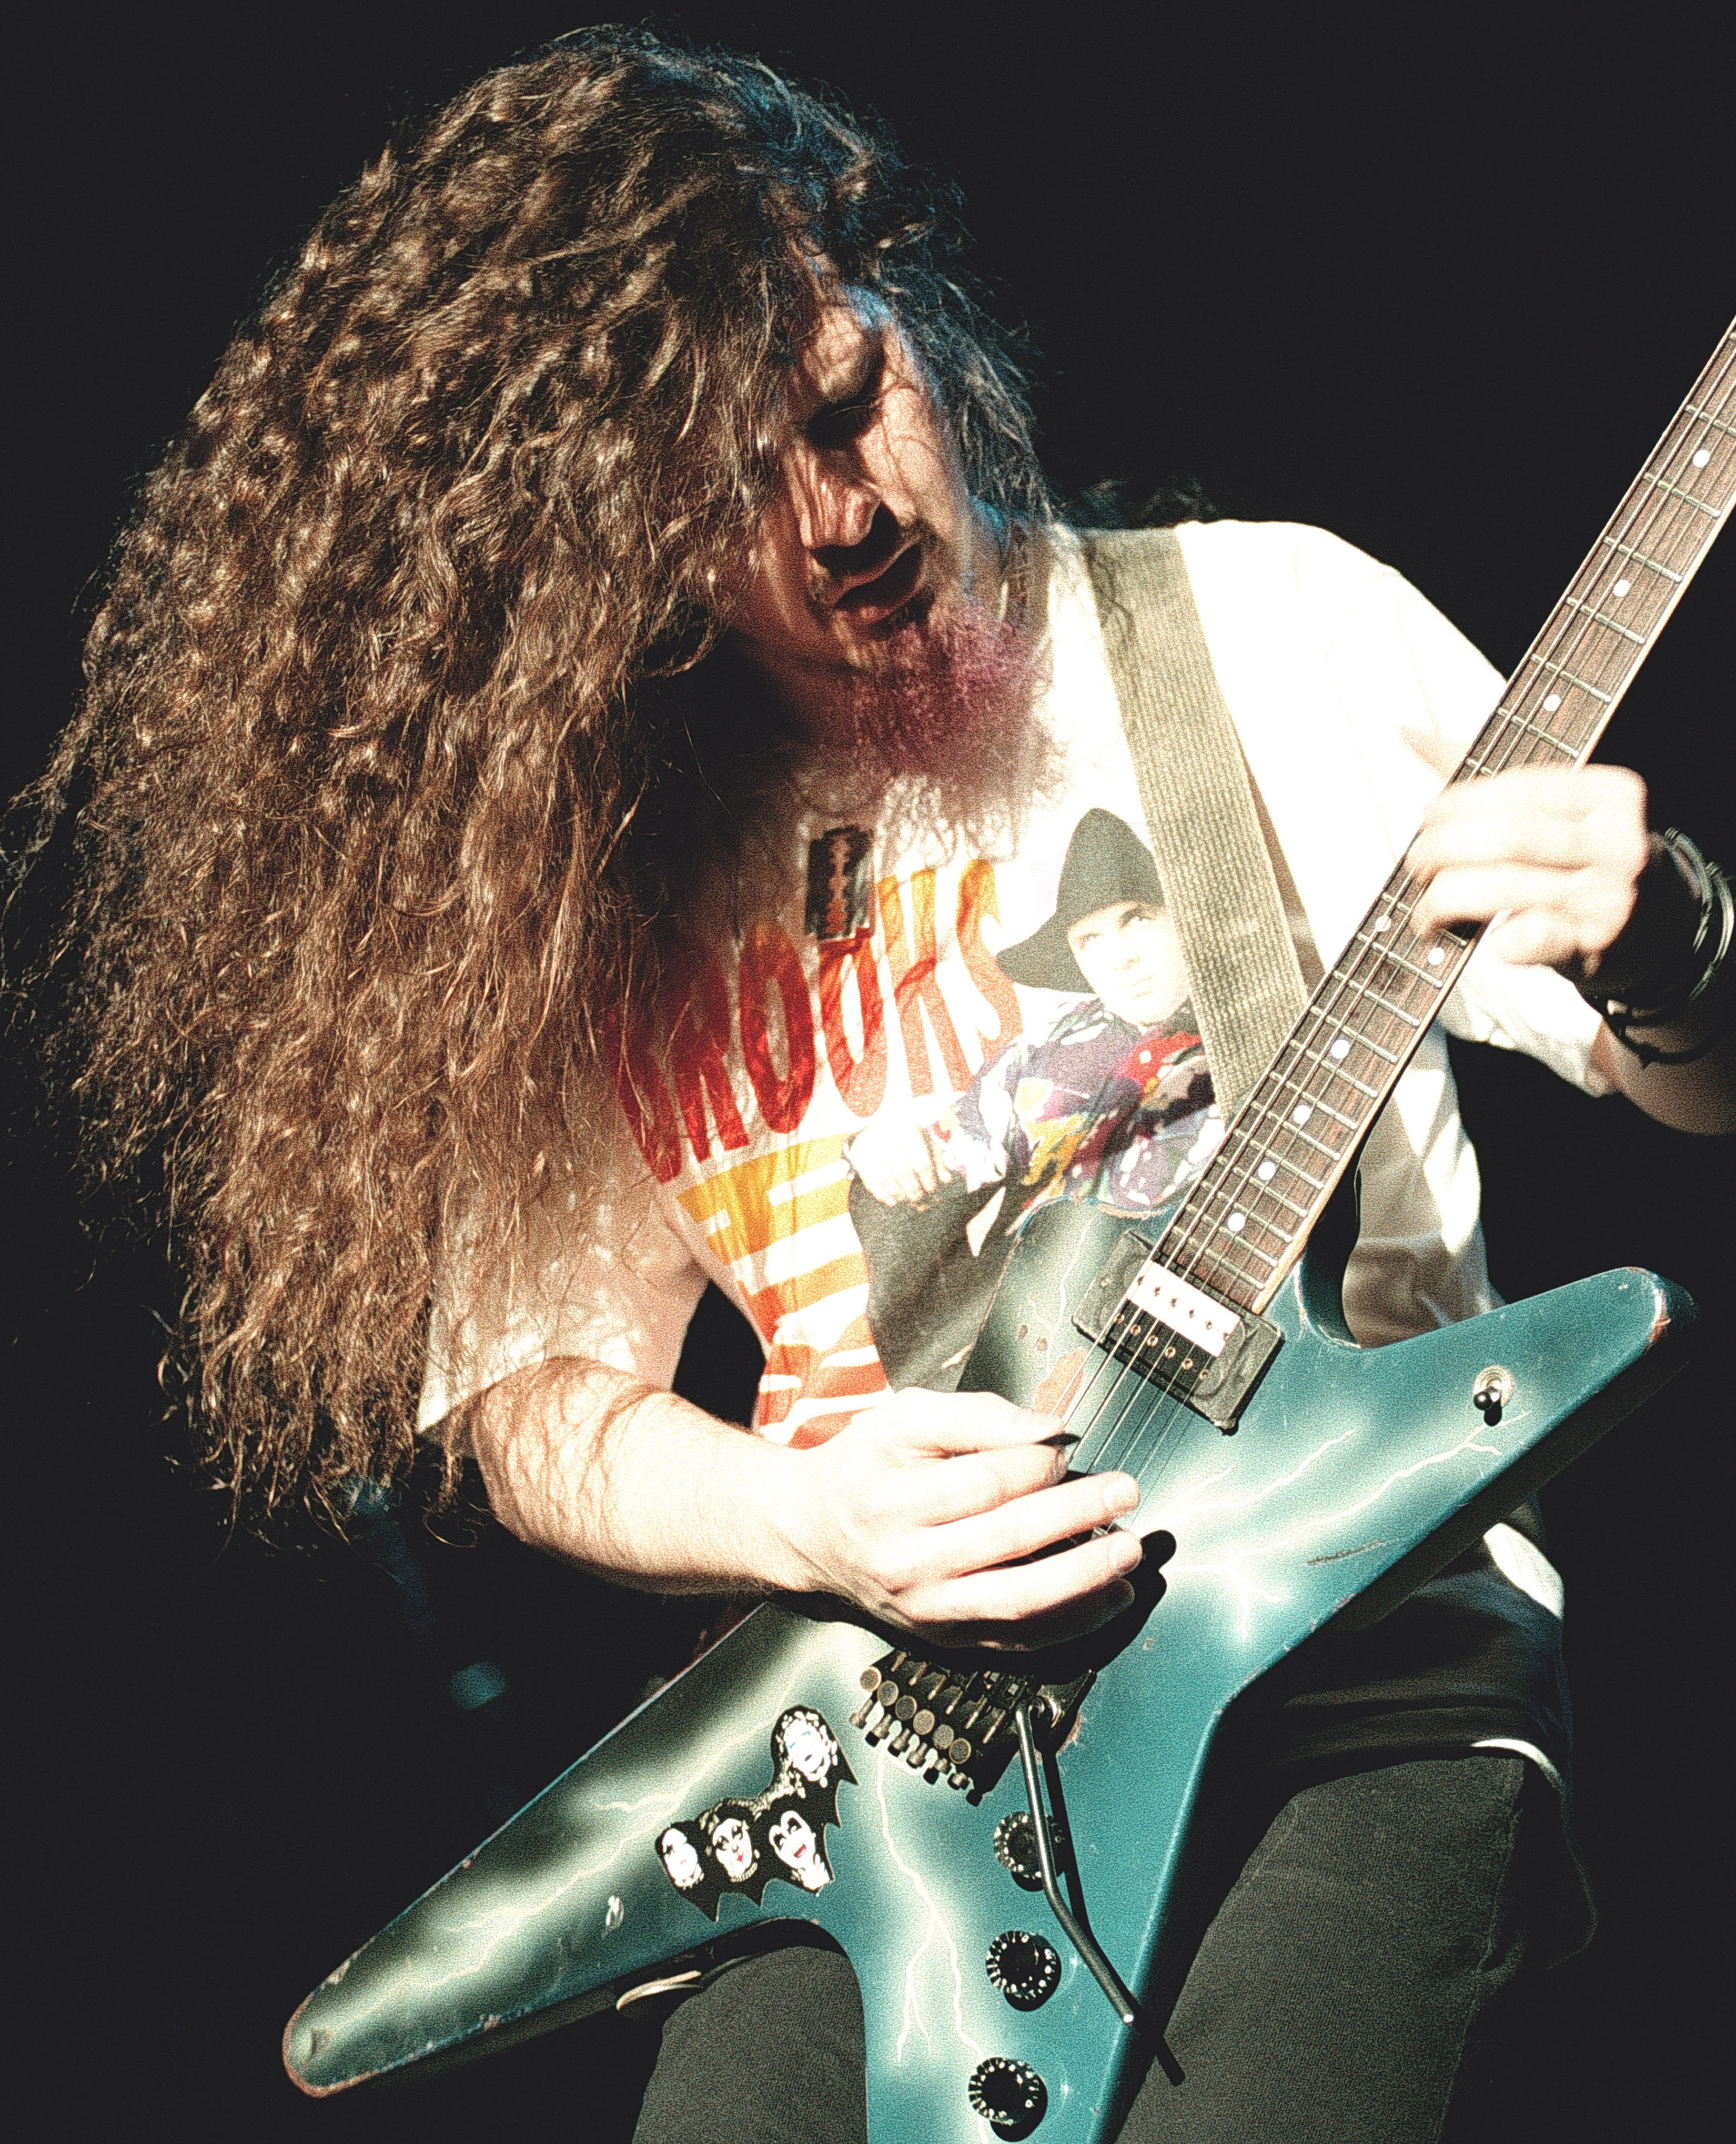 Diamond 'Dimebag' Darrell, of Pantera, performing at San Jose Event Center in San Jose, Calif. on March 10th 1992 Image By: T